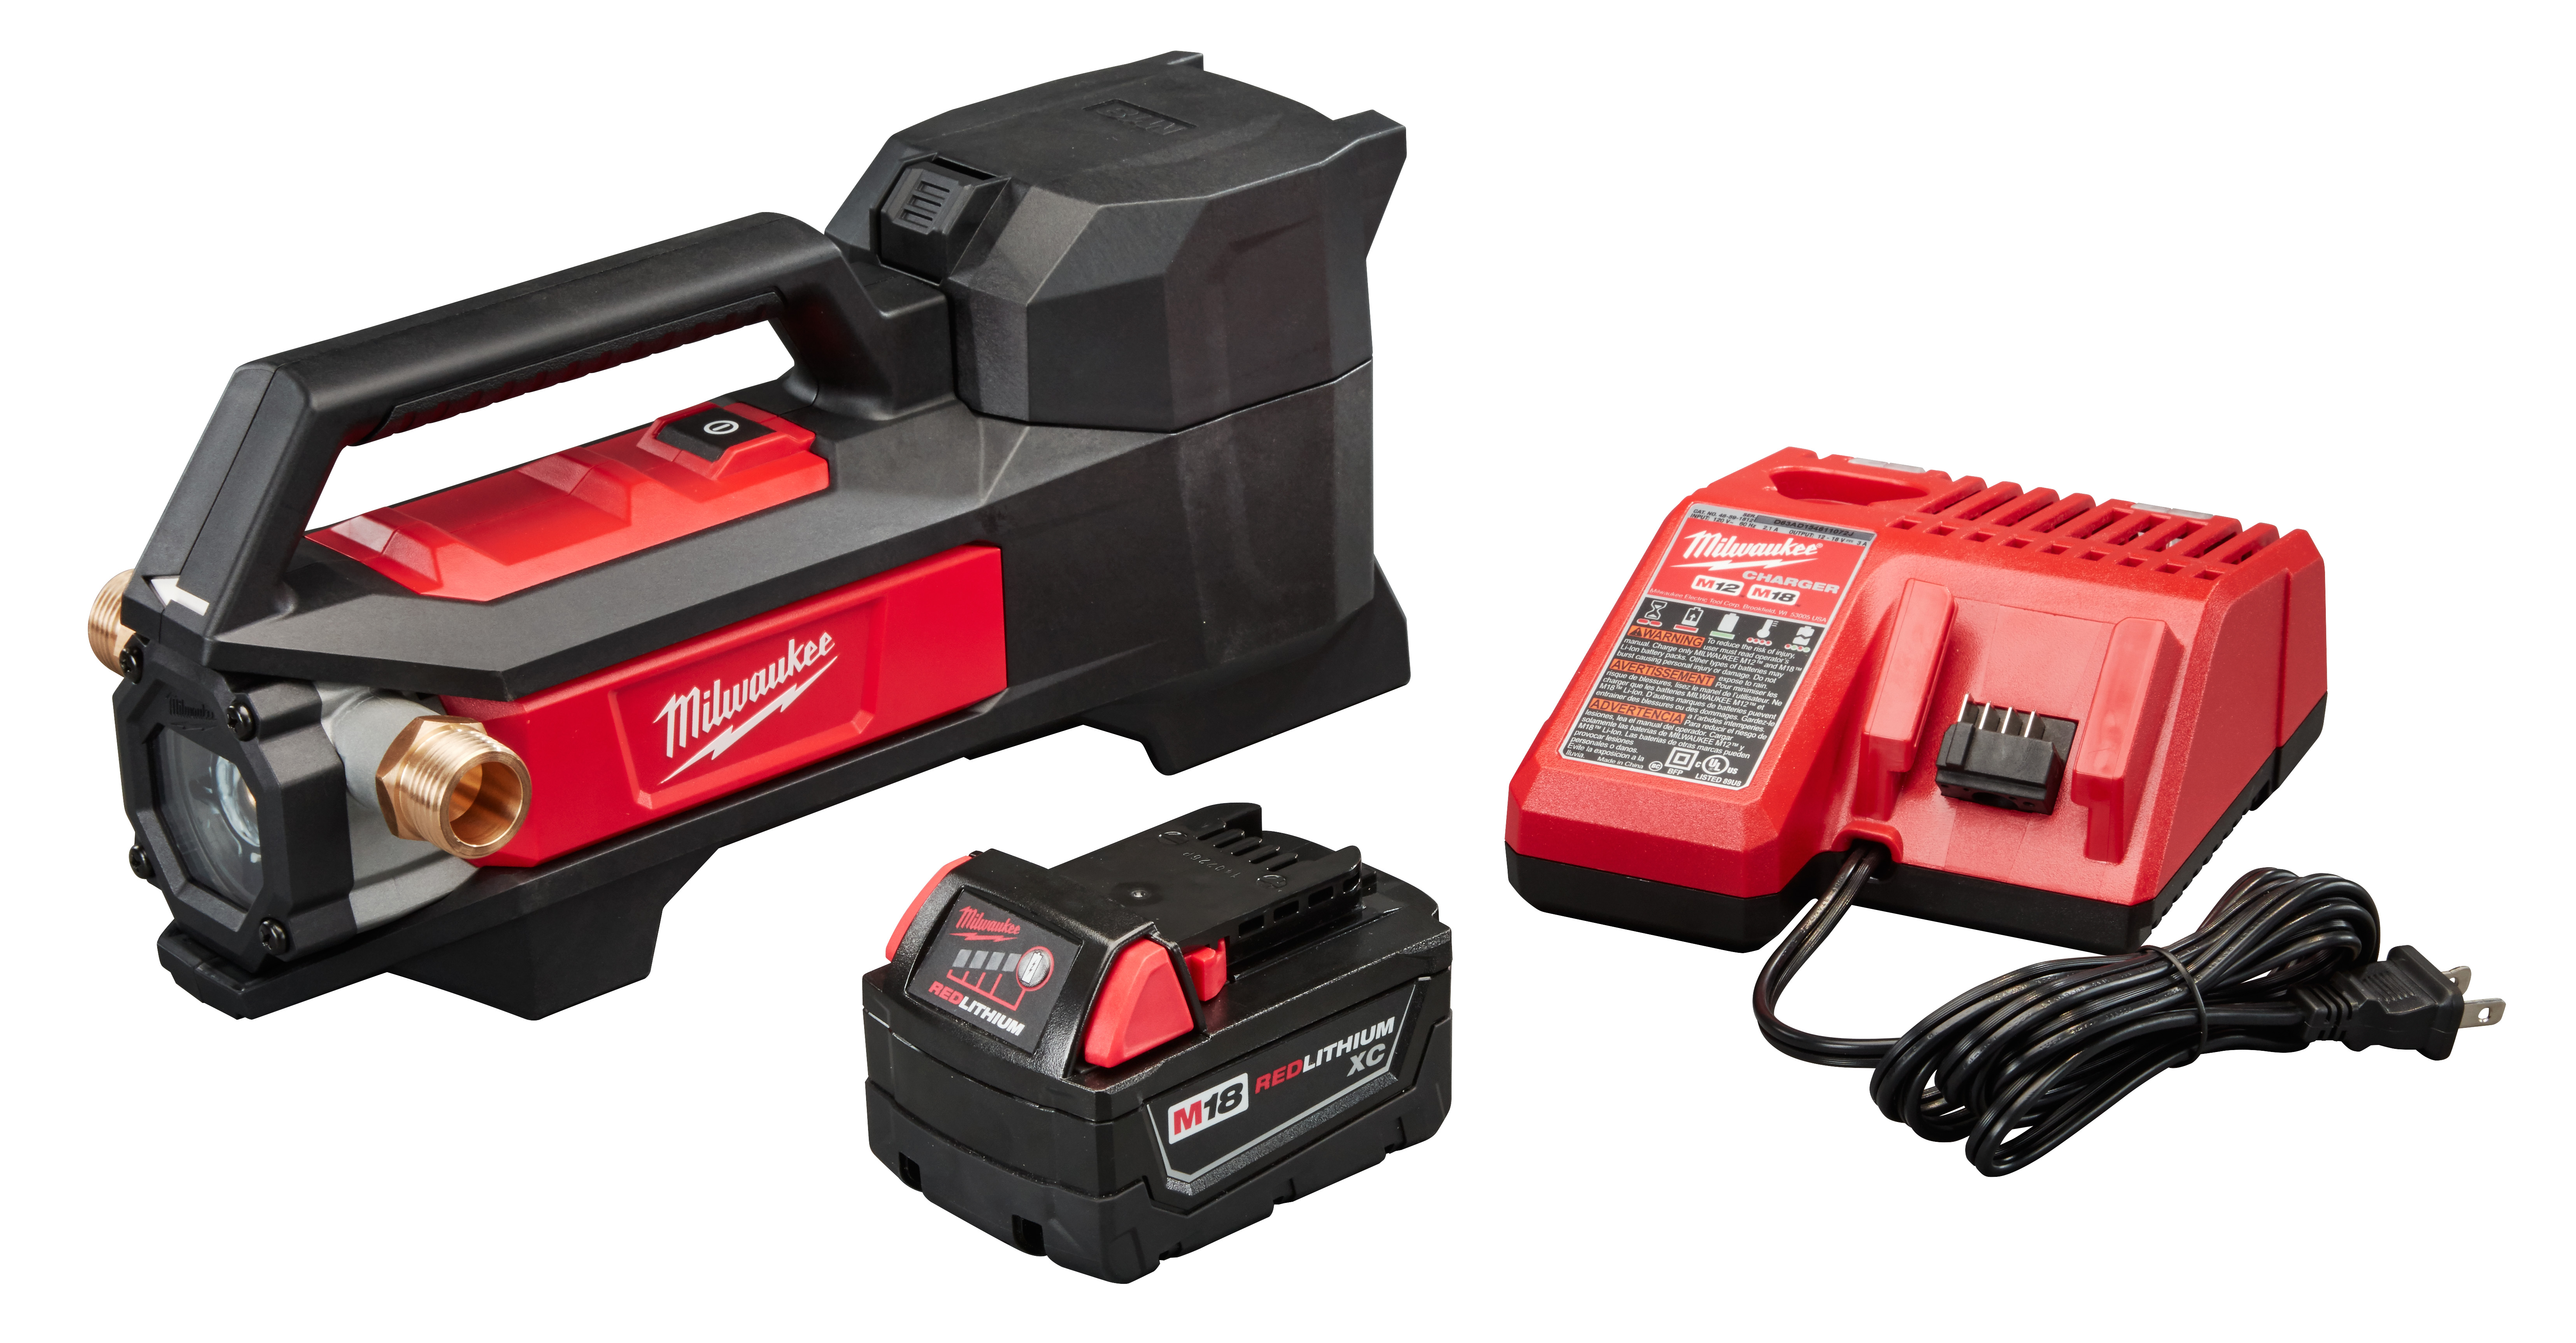 Milwaukee® M18™ 2771-20 Cordless Transfer Pump, 480 gph Flow Rate, 3/4 in Inlet x 3/4 in Outlet, 1/4 hp, Nitrile Rubber/Reinforced Plastic, Import